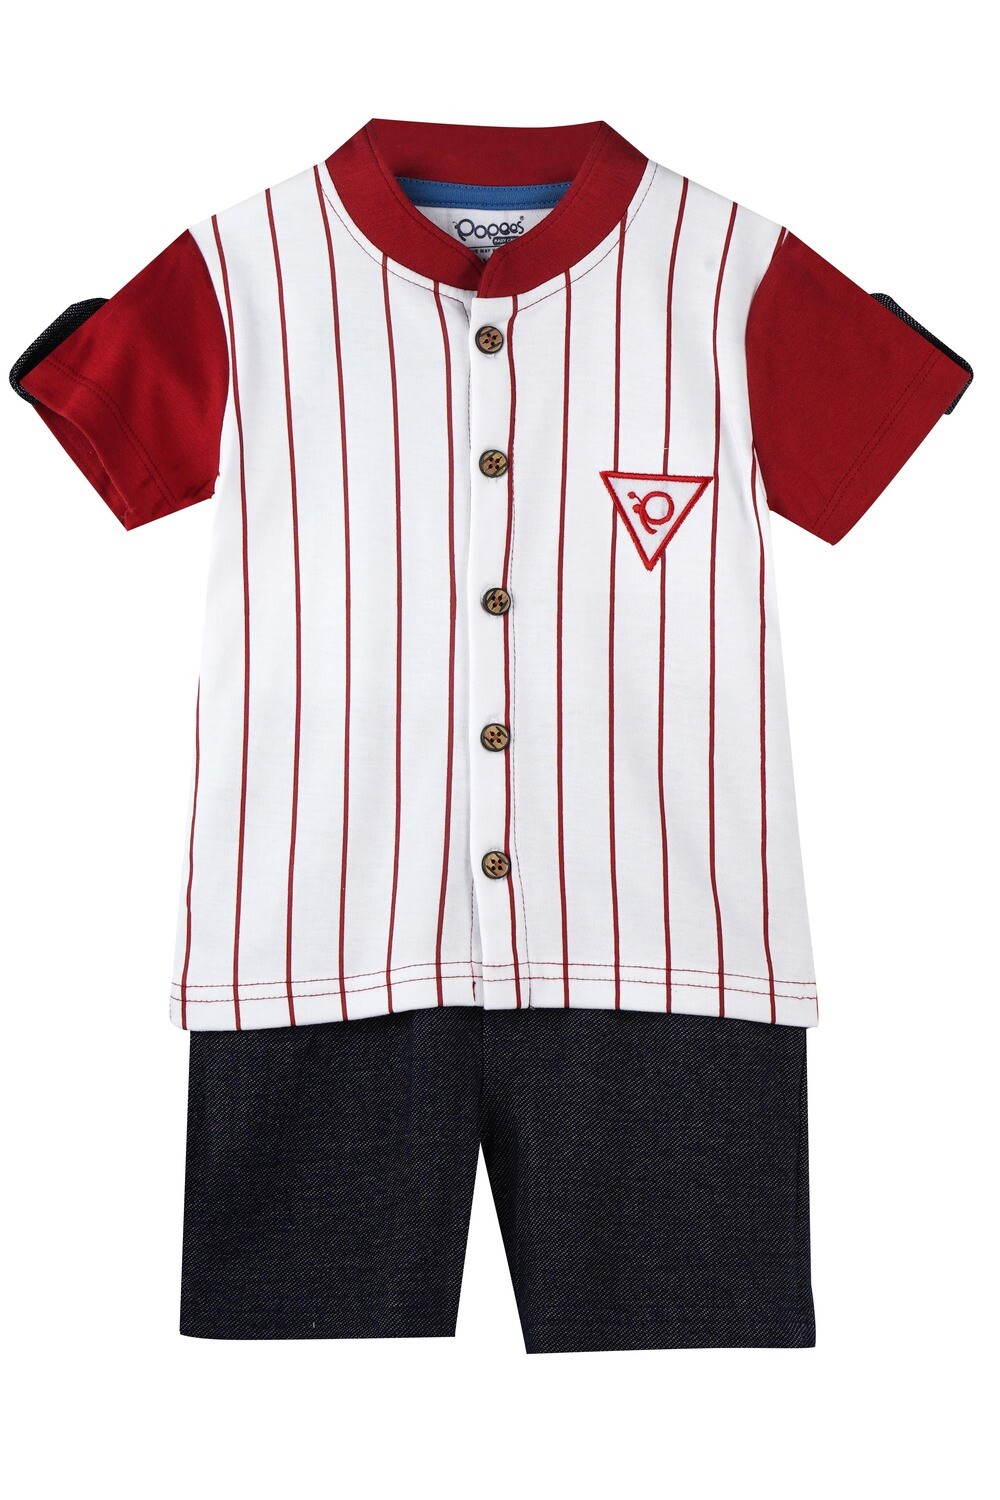 CHILL GARNET Half Sleeve Front Half Open Cotton Top and Shorts for Baby Boys